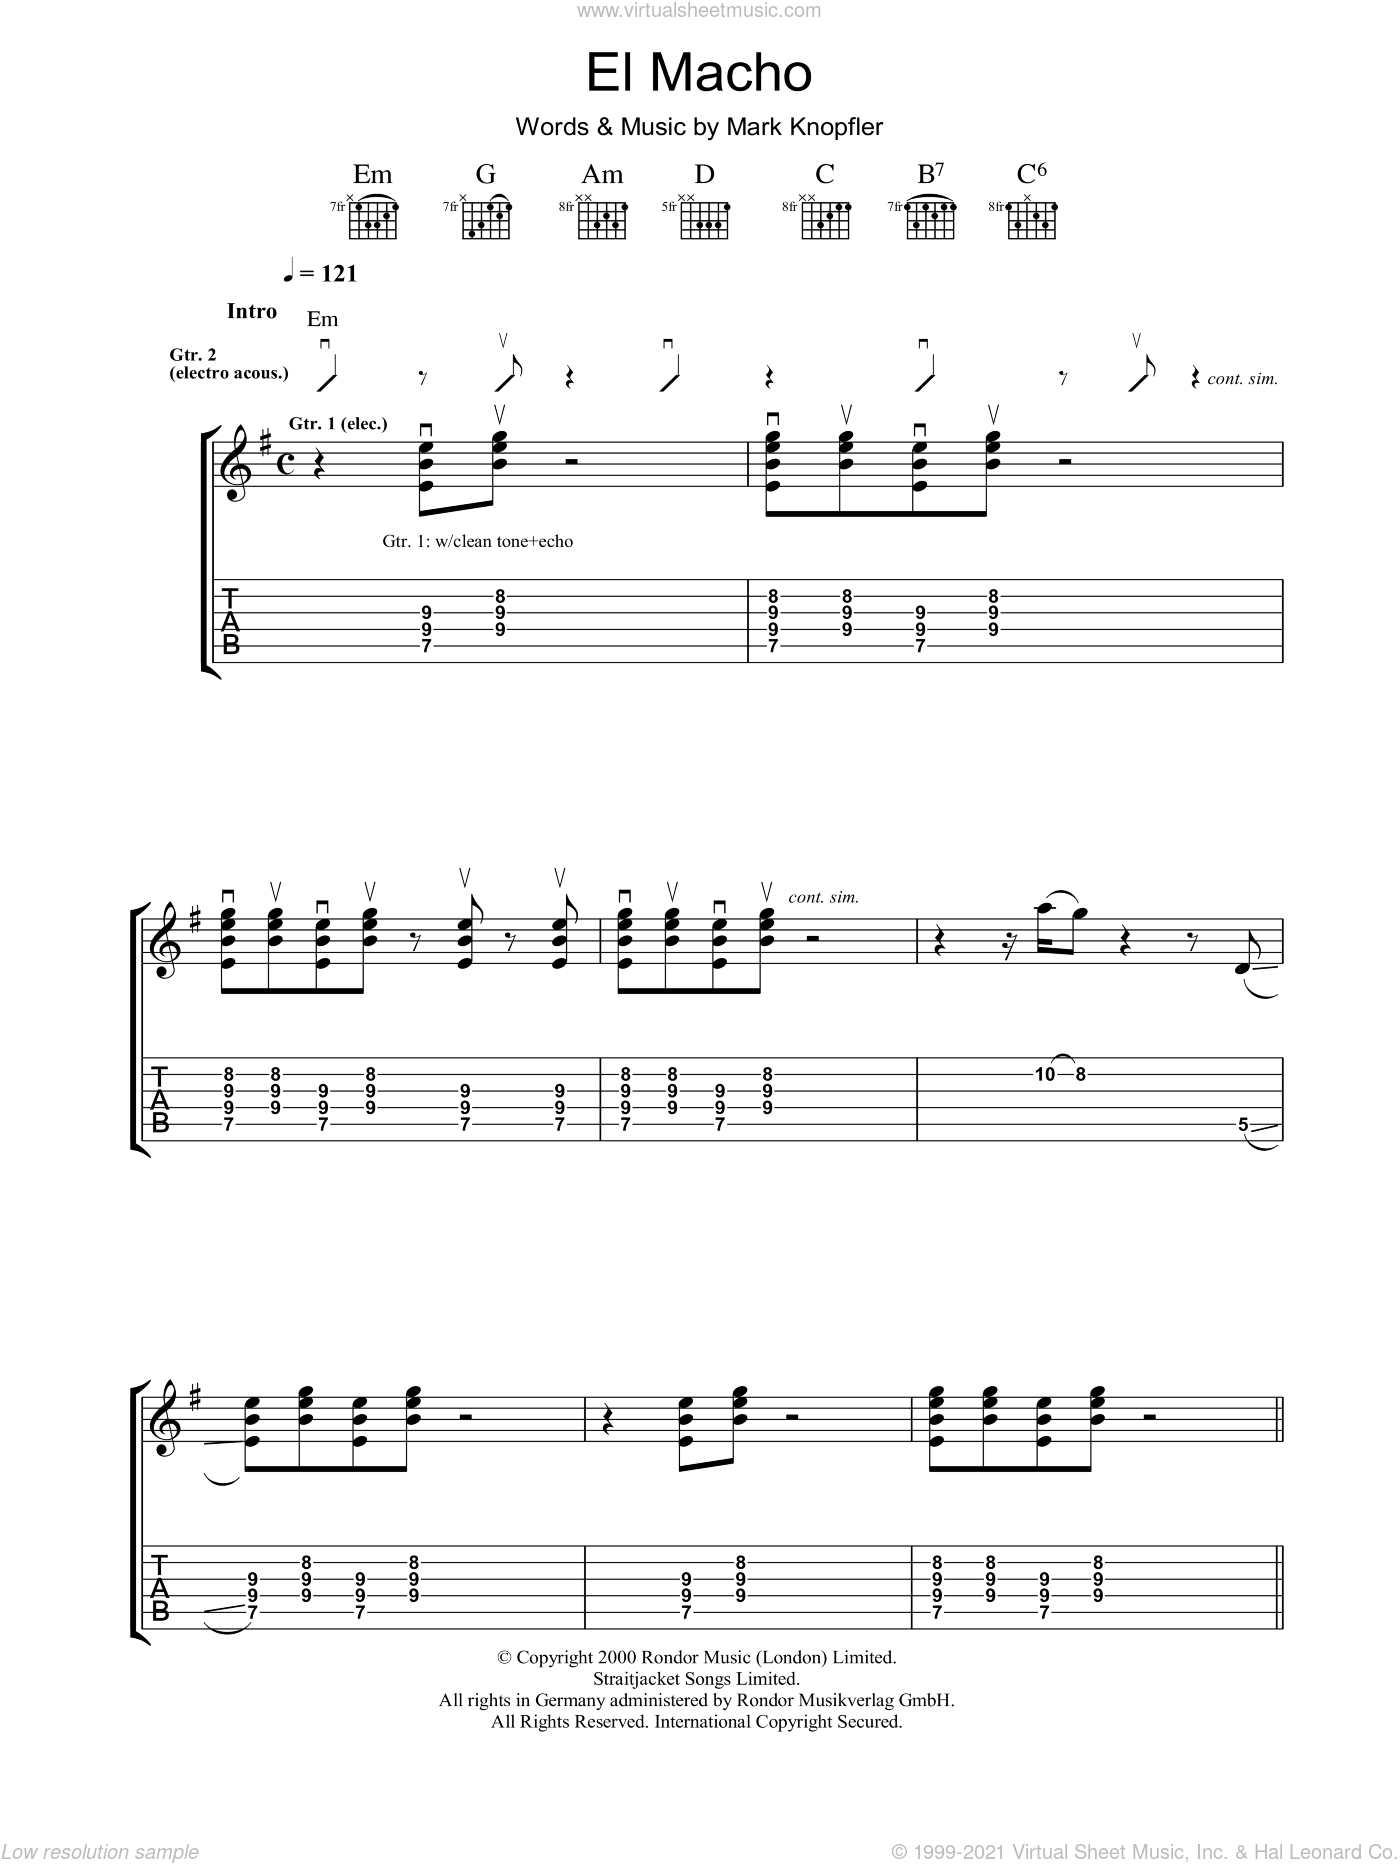 El Macho sheet music for guitar (tablature) by Mark Knopfler. Score Image Preview.